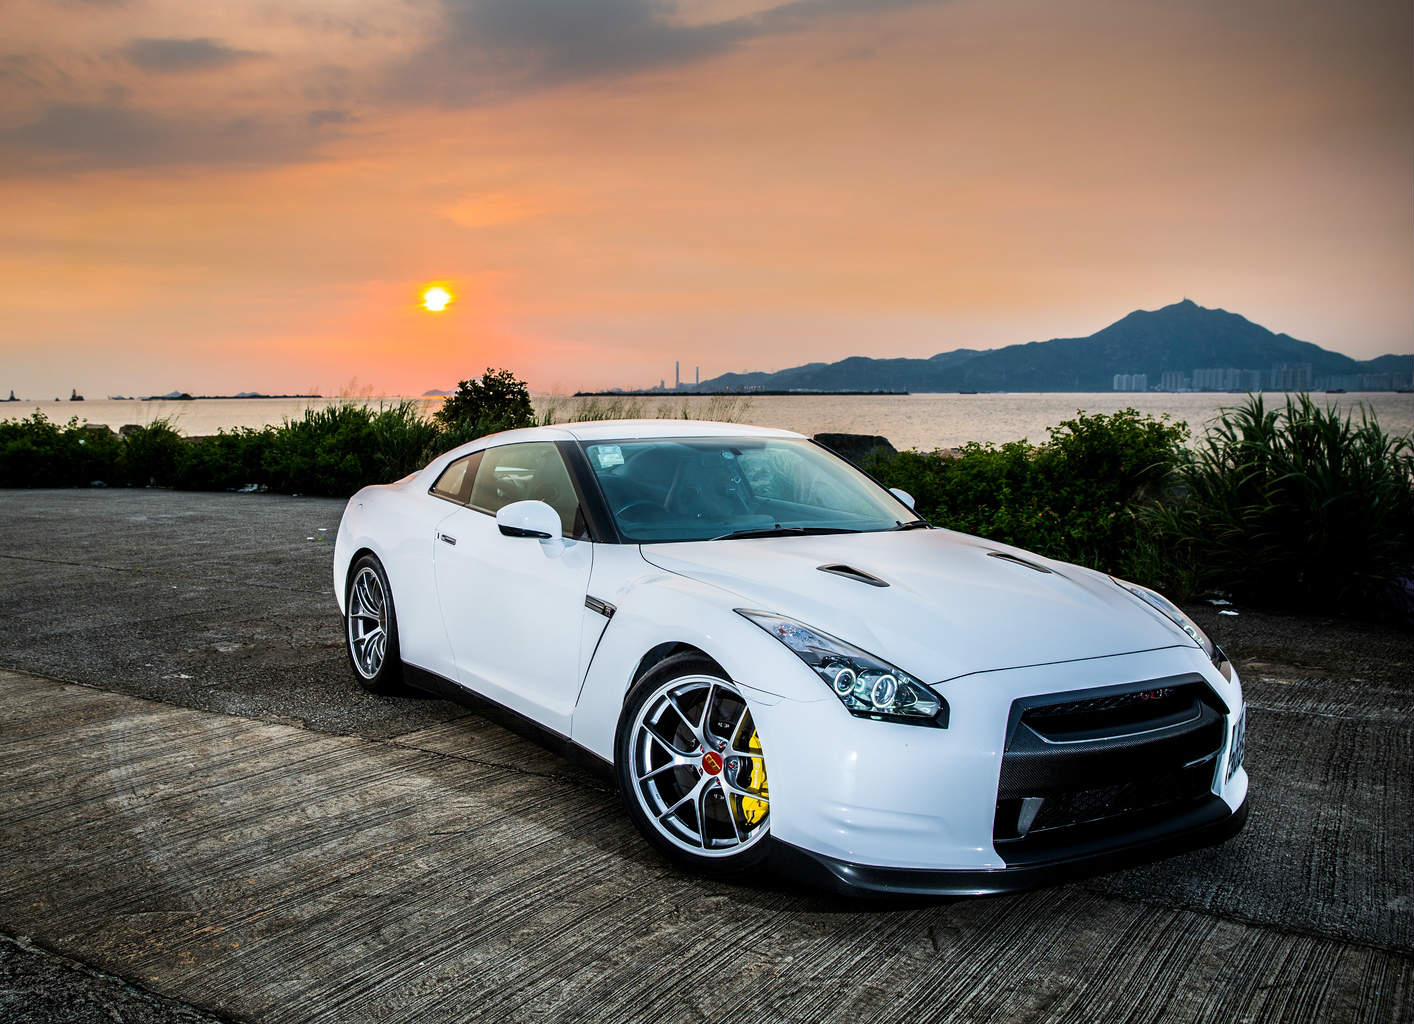 gorgeous white pearl 2007 nissan gt-r premium edition in honk kong